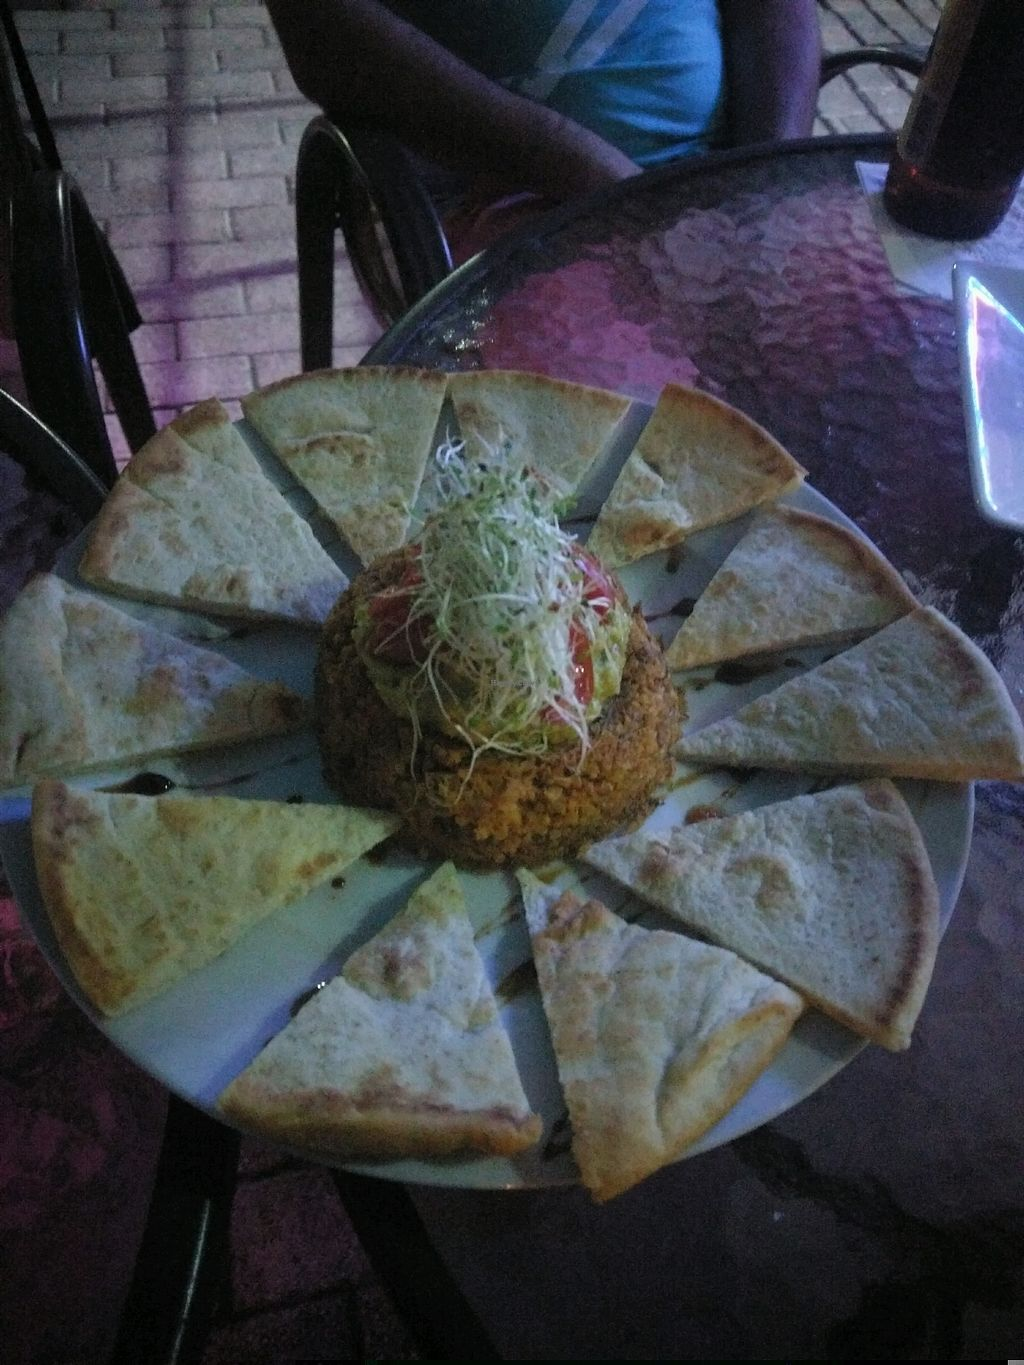 """Photo of Ocean Park Cafe  by <a href=""""/members/profile/ChristineLugo"""">ChristineLugo</a> <br/>meatless nachos <br/> January 9, 2018  - <a href='/contact/abuse/image/45729/344534'>Report</a>"""